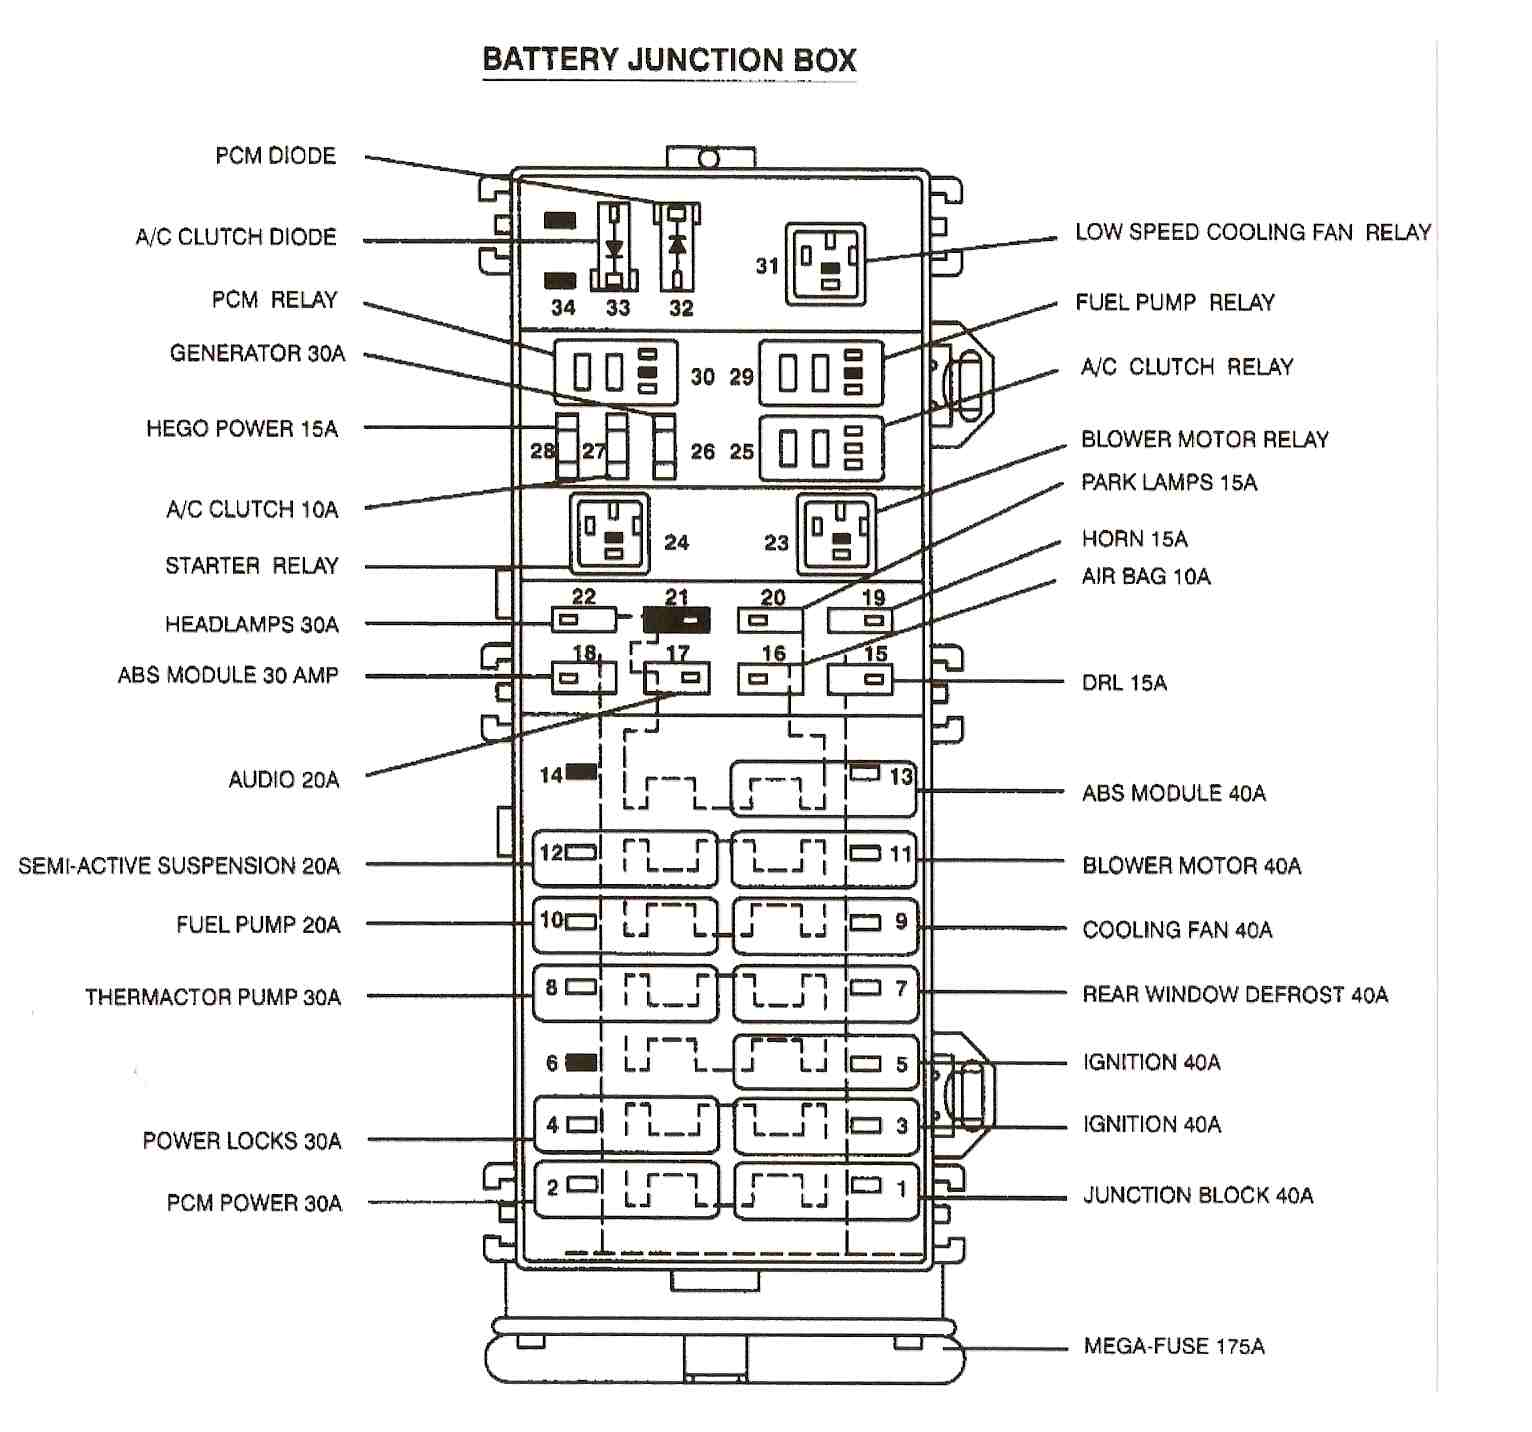 1996 taurus fuse box circuits symbols diagrams u2022 rh amdrums co uk 1996 ford taurus fuse box location